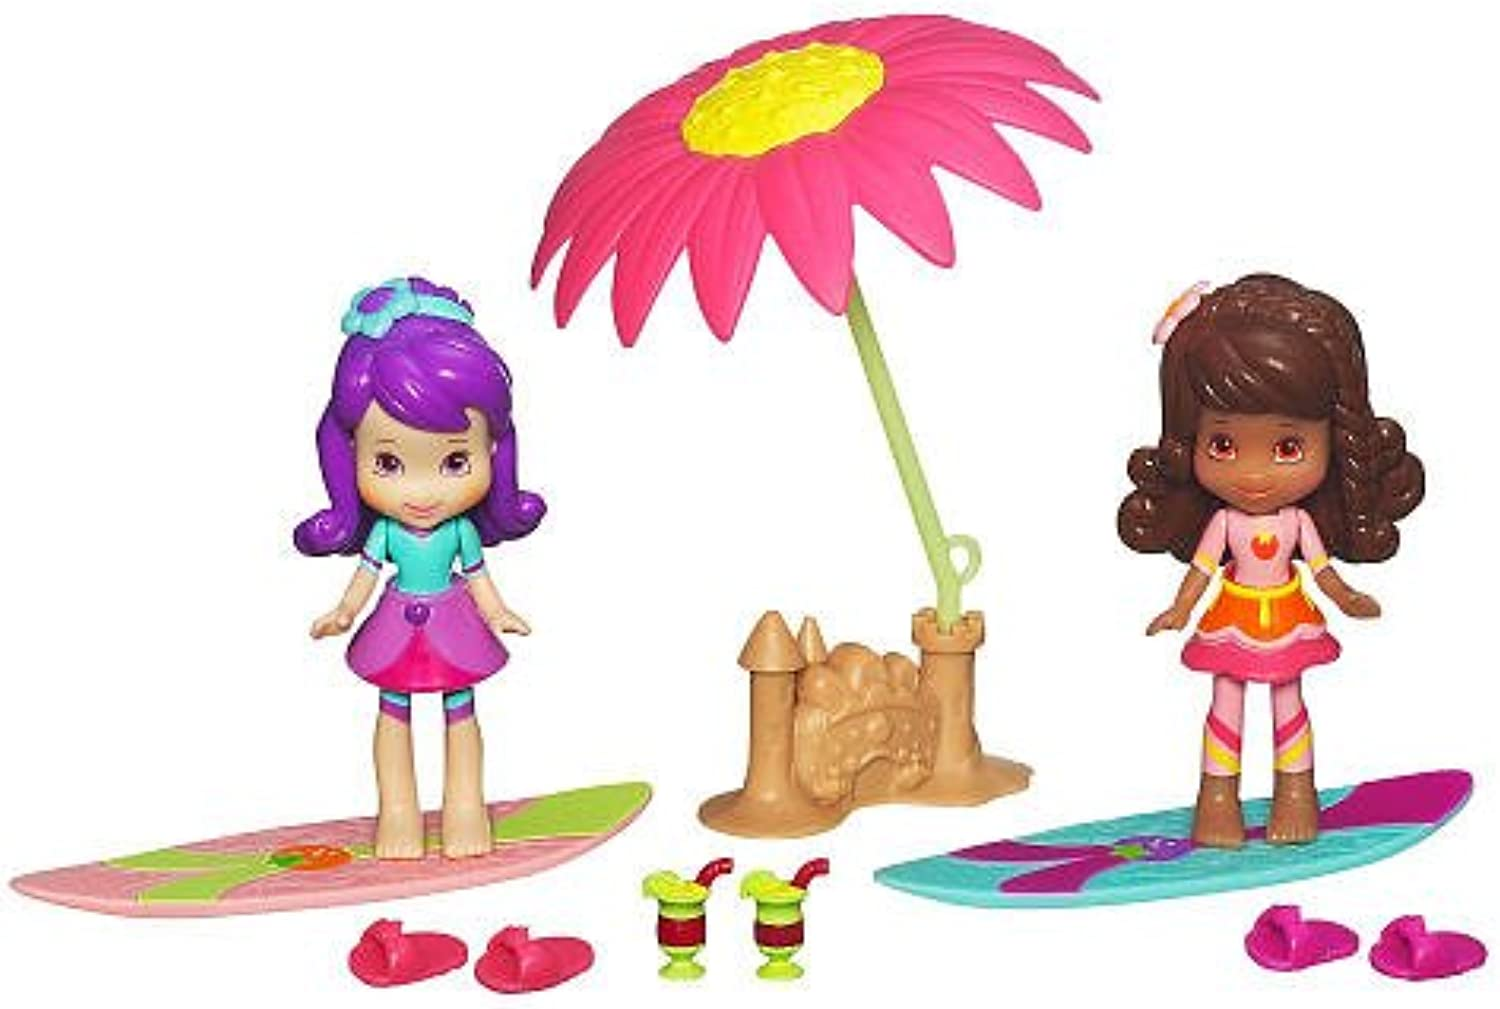 Strawberry Shortcake Celebration Playpack - Sun-Lovin' Beach